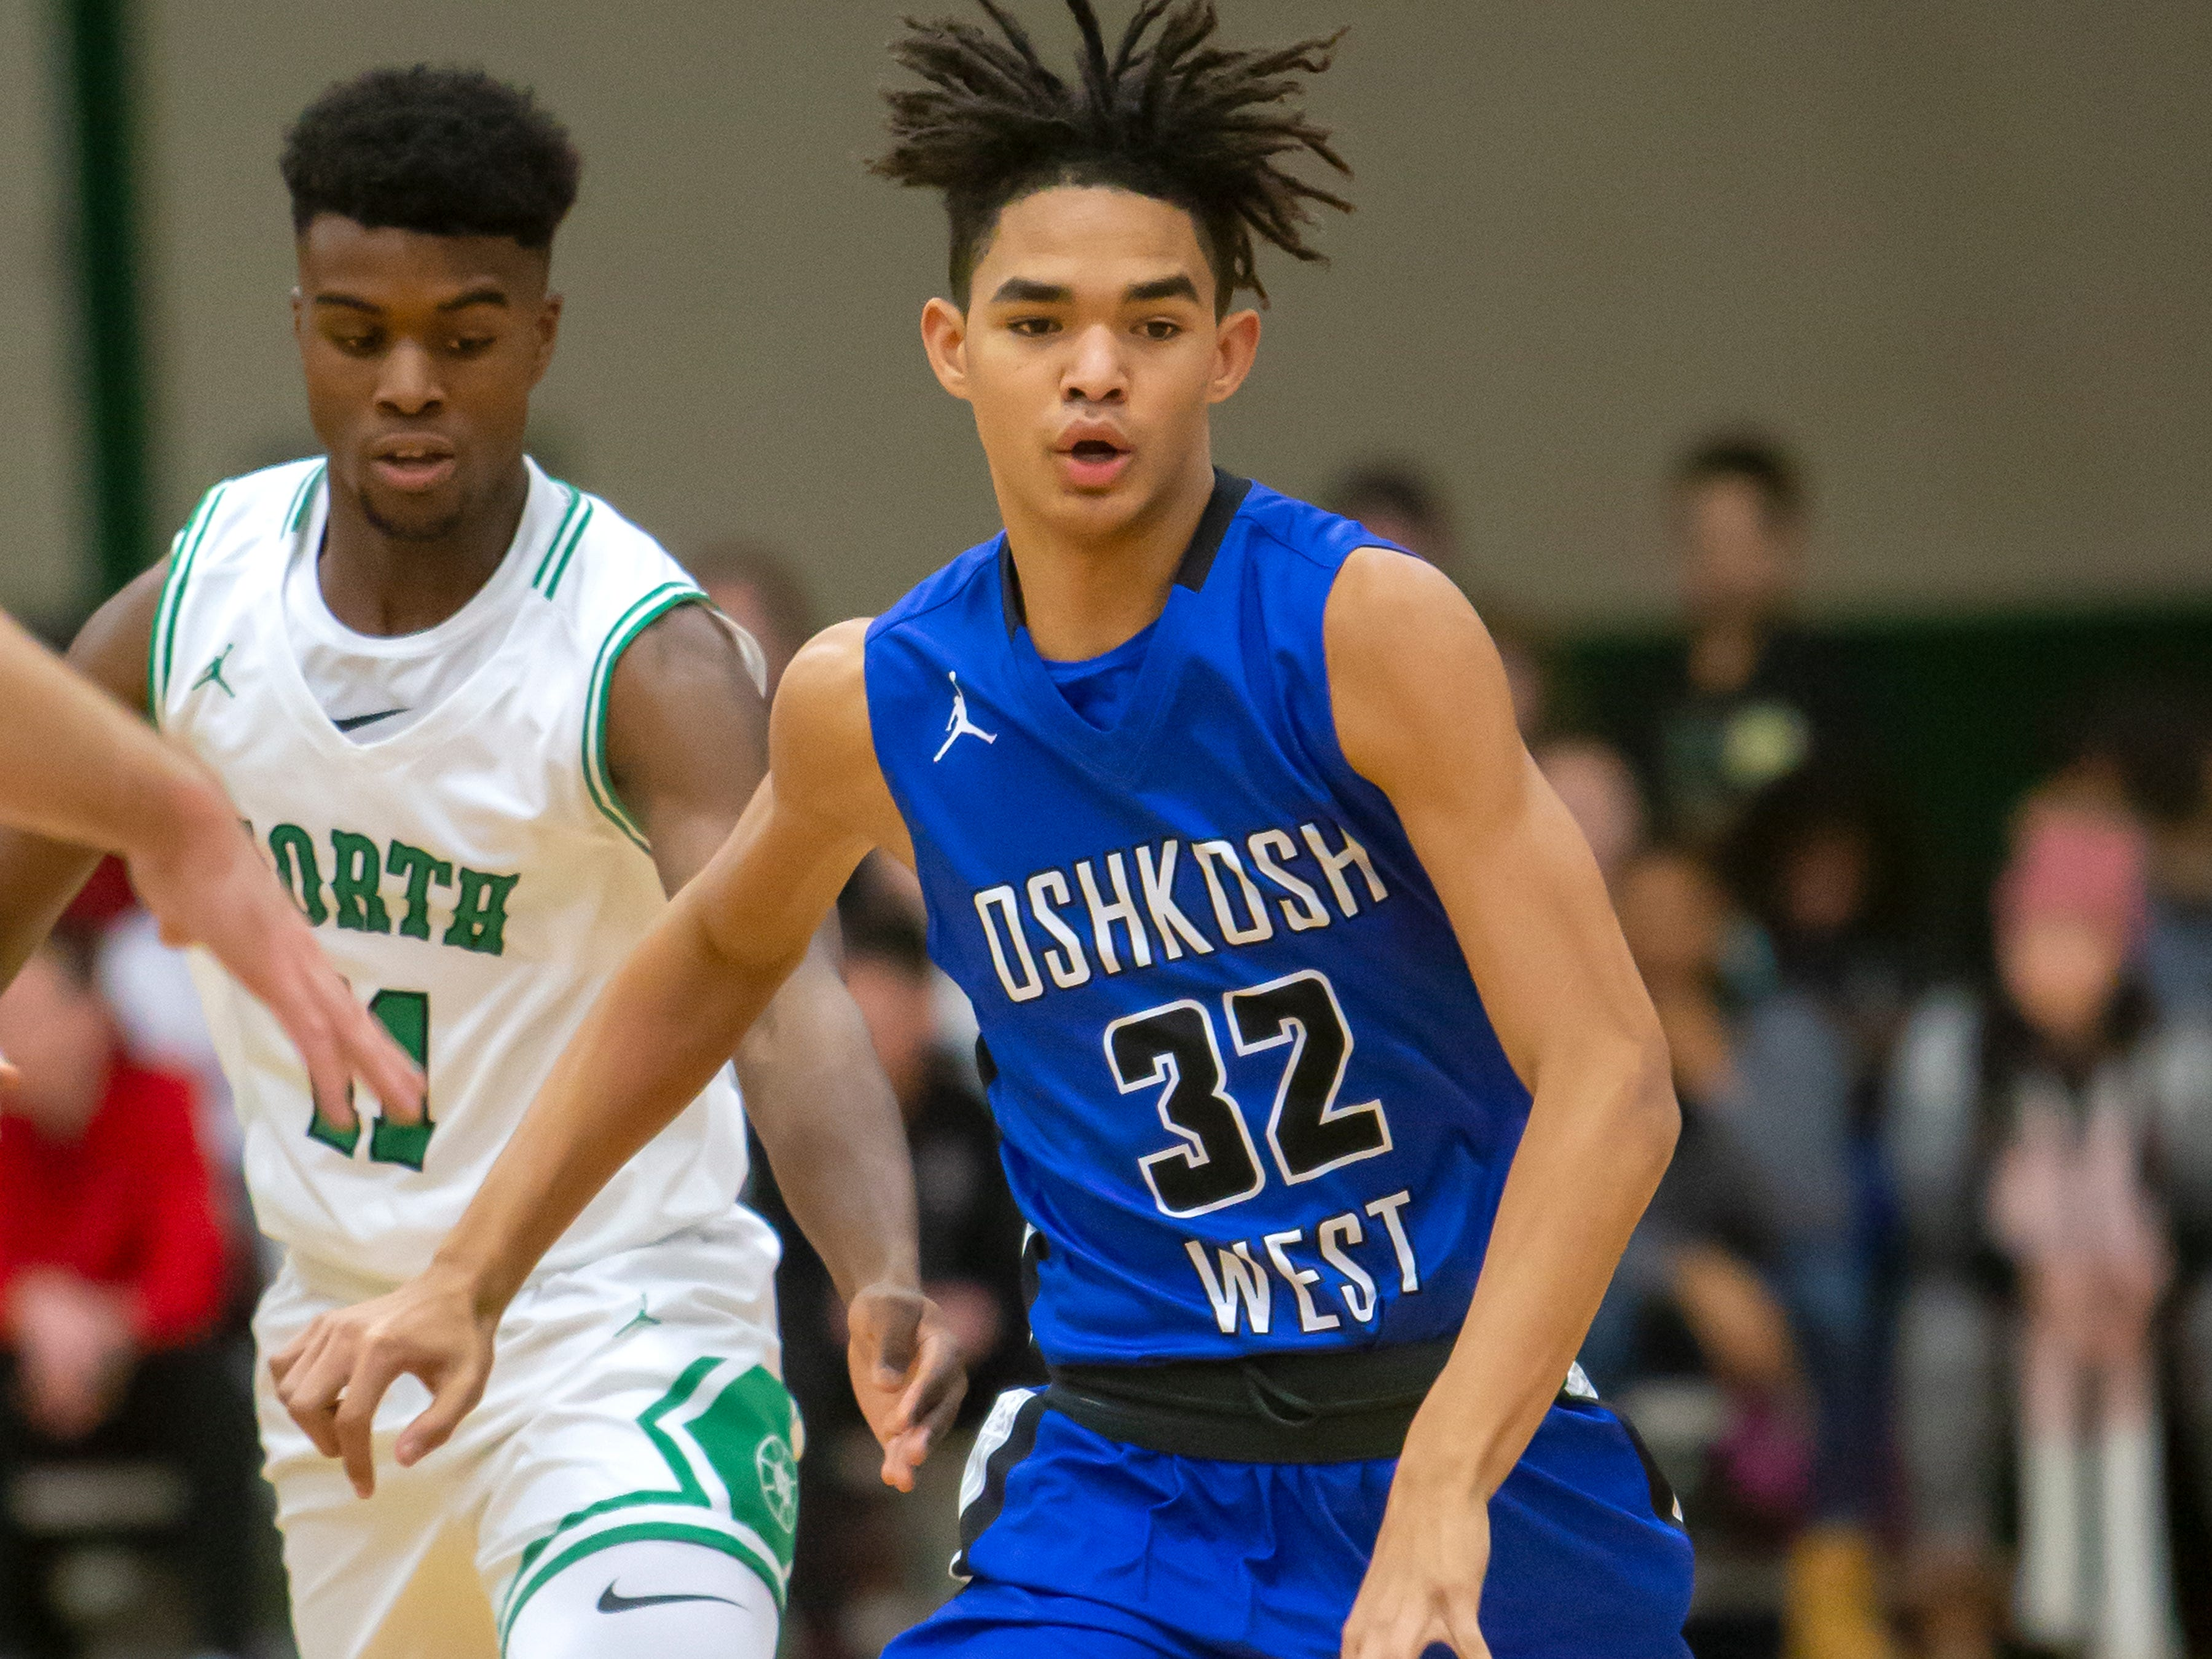 Oshkosh West's Jacquez Overstreet dribbles the ball across the court playing against the Spartans at the Oshkosh North High School on Tuesday, Jan. 8, 2019.